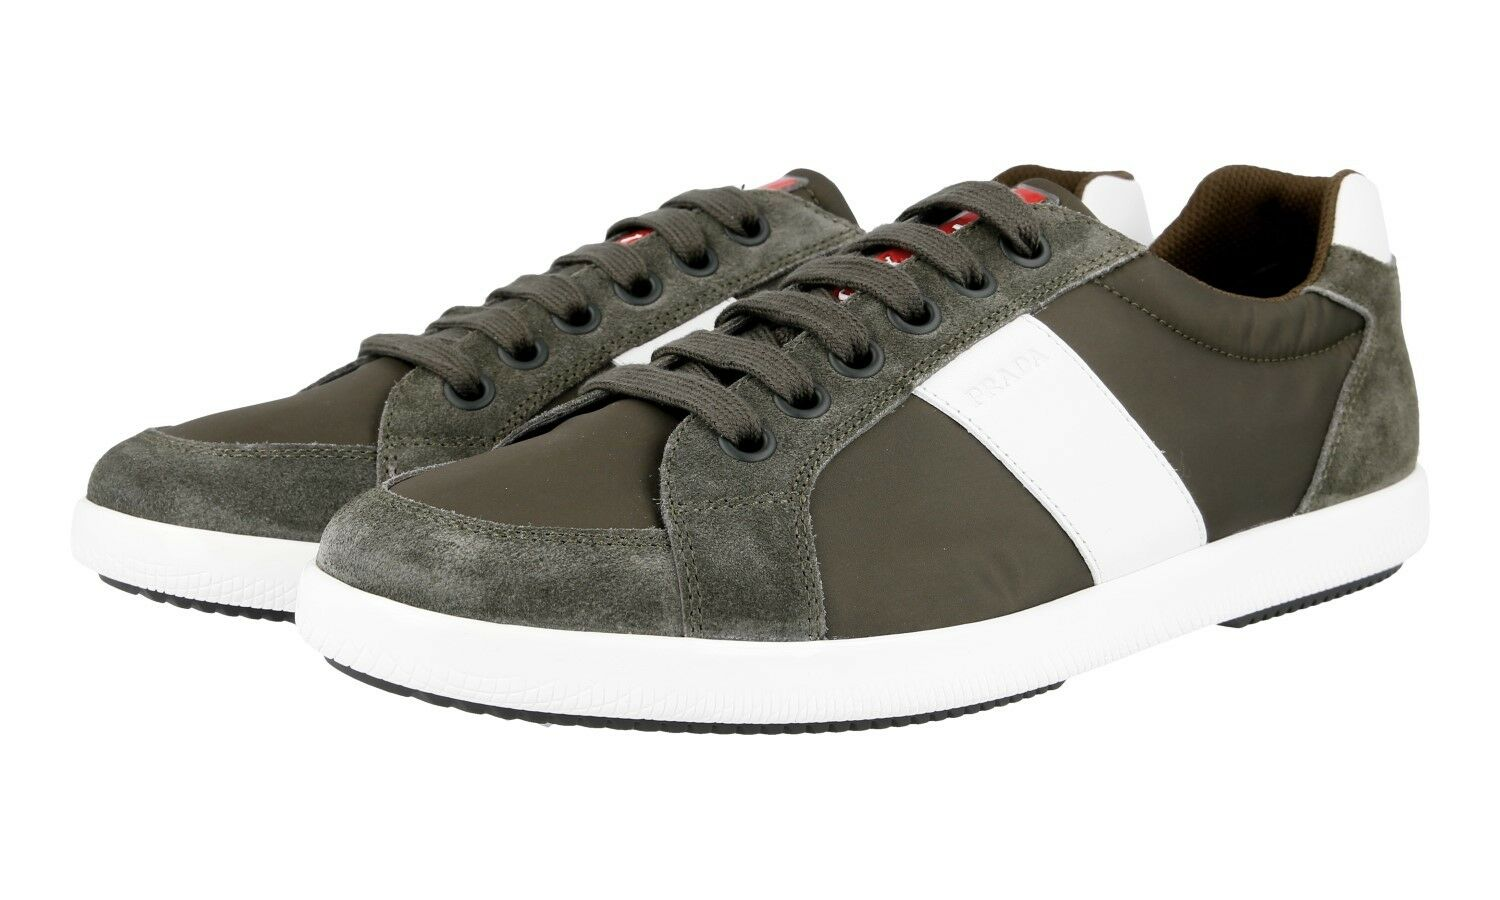 AUTHENTIC LUXURY PRADA SNEAKERS SHOES 4E2845 MIMETICO NEW US 11 EU 44 44,5